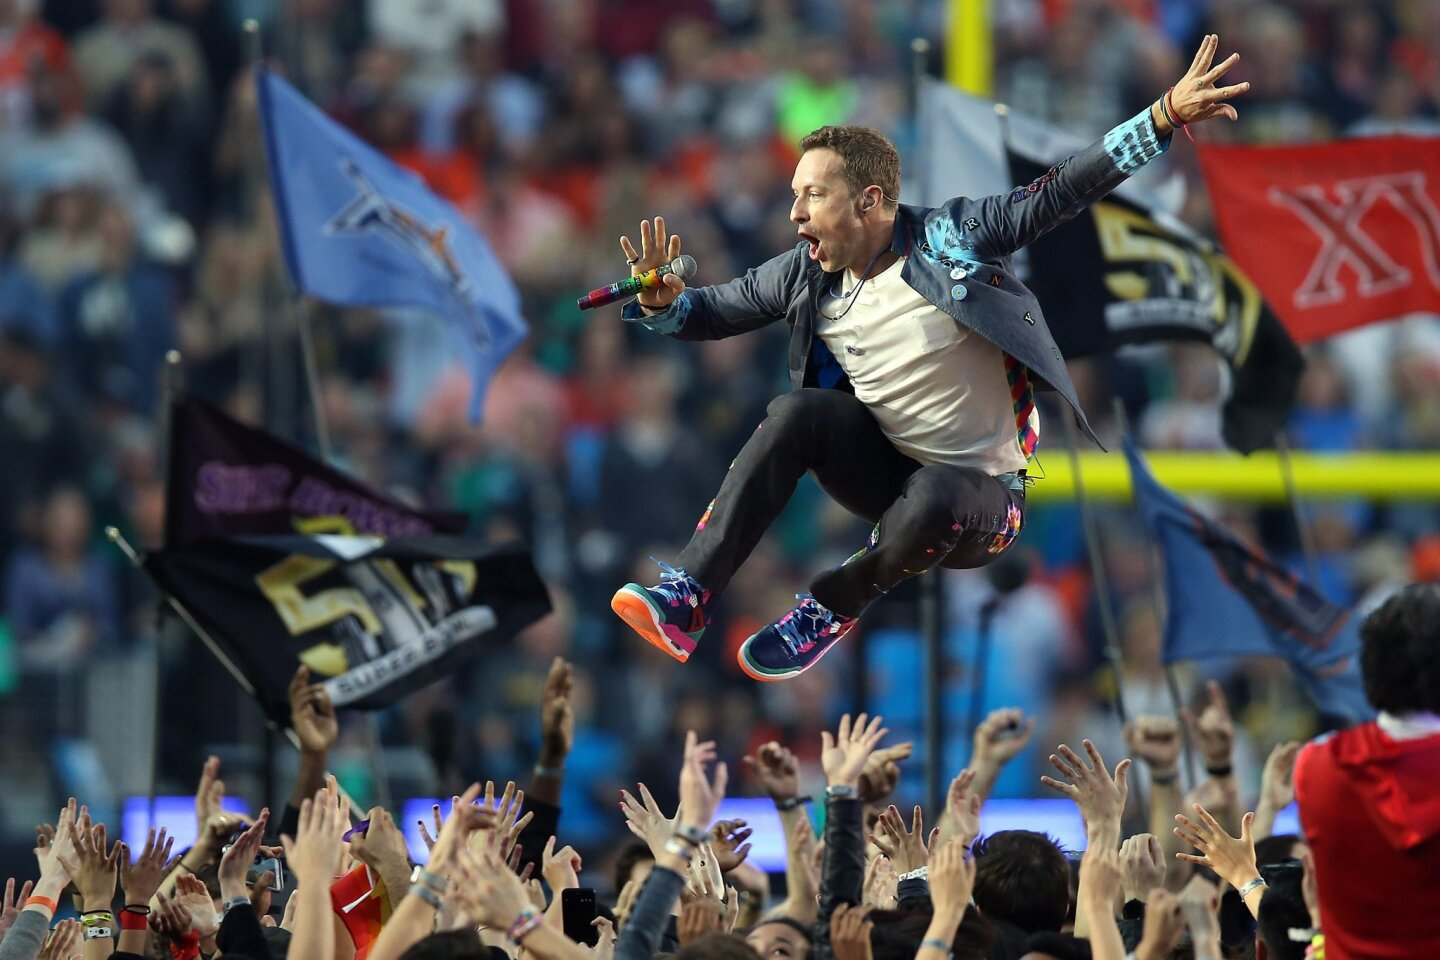 Feb 7, 2016; Santa Clara, CA, USA; Coldplay singer Chris Martin performs during halftime in Super Bowl 50 at Levi's Stadium. Mandatory Credit: Cary Edmondson-USA TODAY Sports ** Usable by SD ONLY **